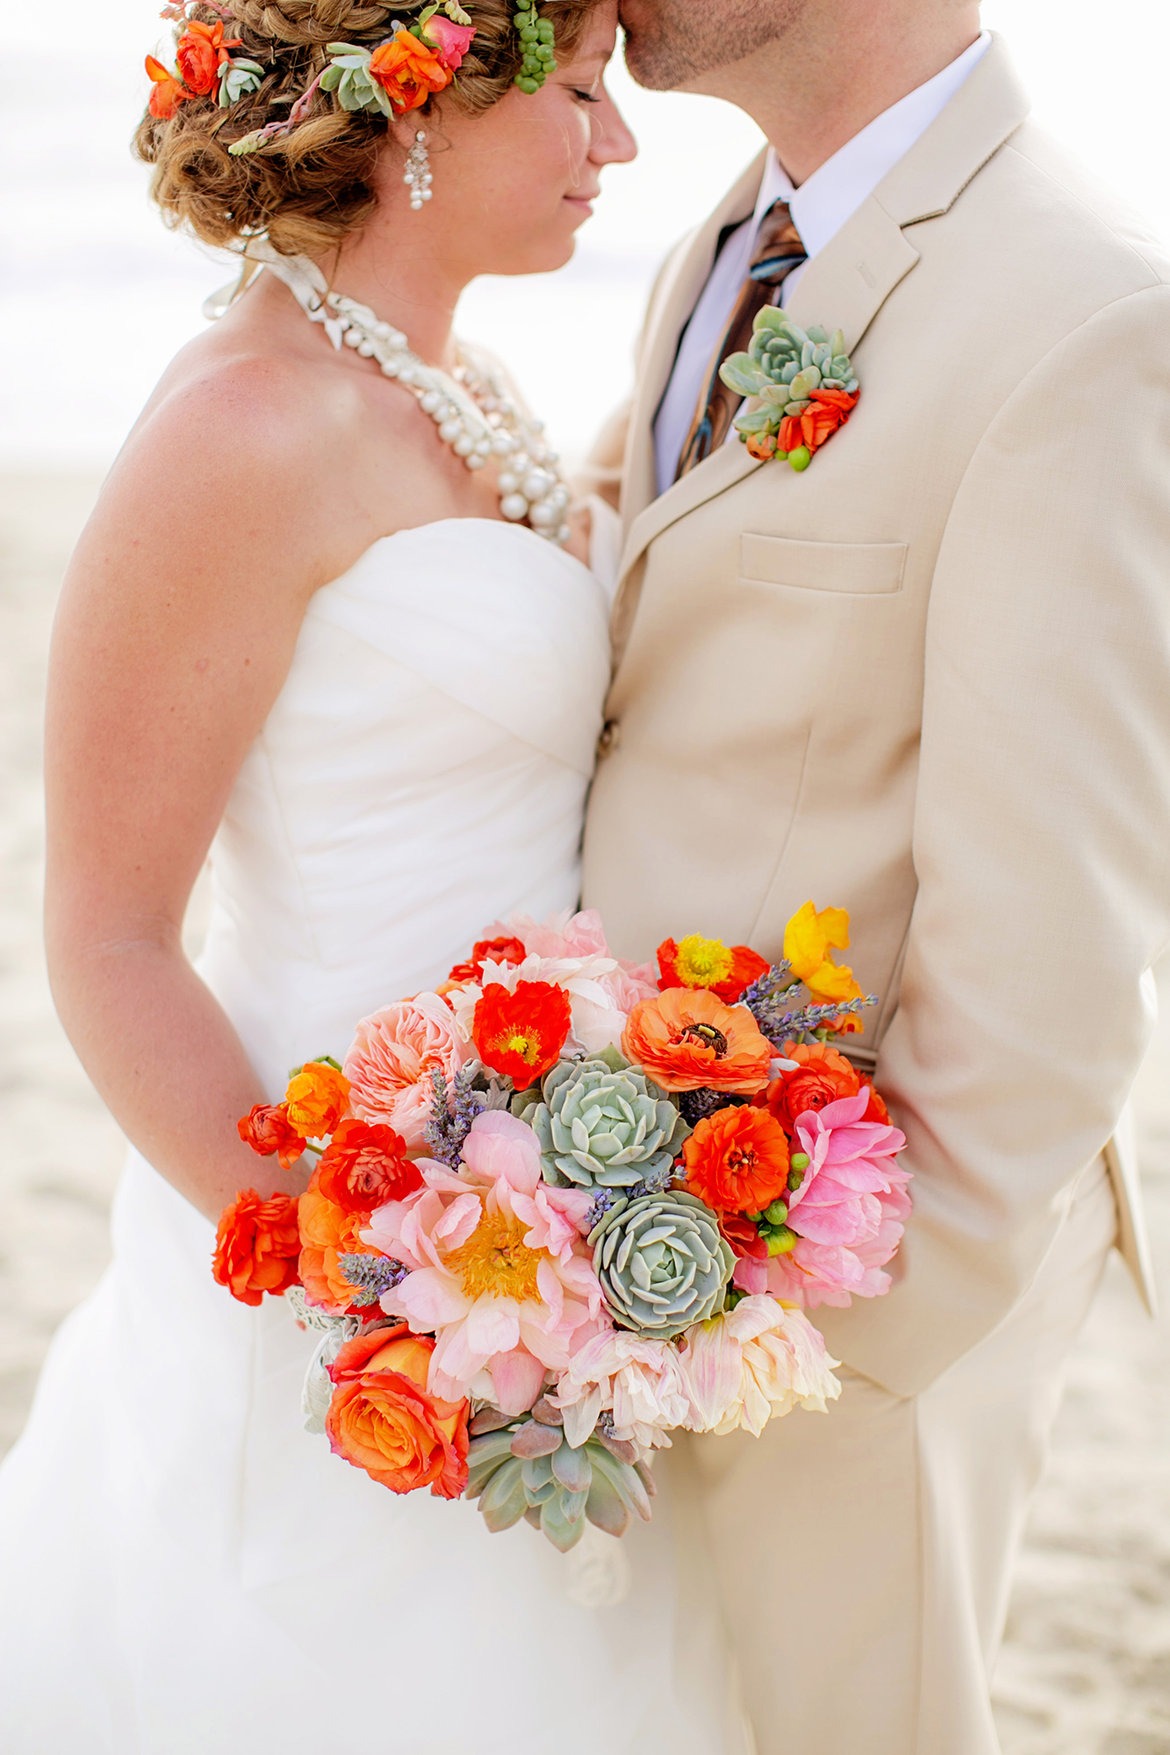 Wedding Bouquets With Rainbow Roses : The most beautiful ideas for your wedding bouquet